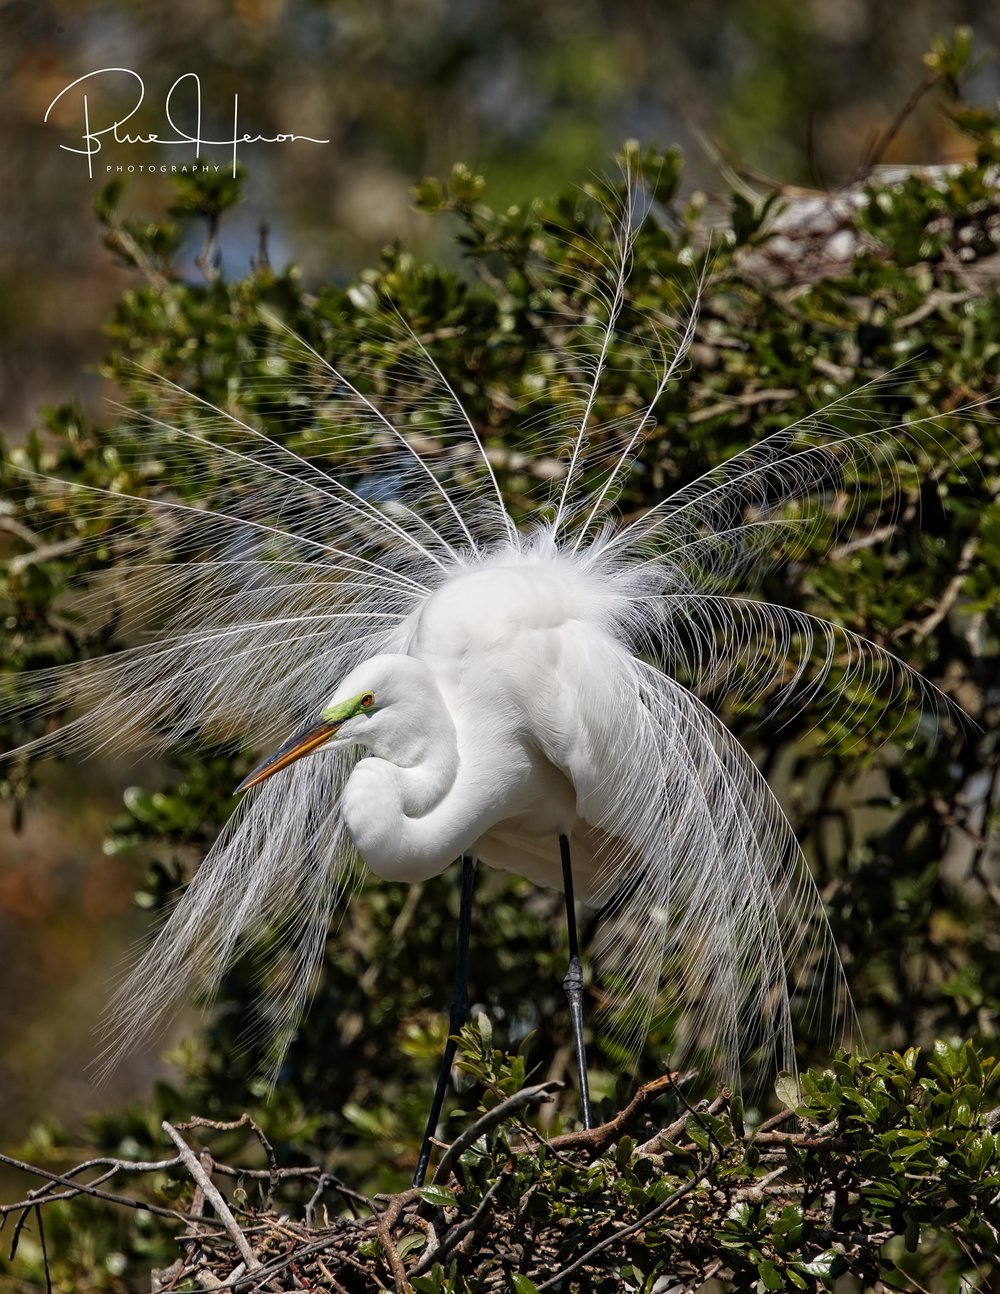 These wispy white plumes almost lead to their extinction...thankfully they are still around